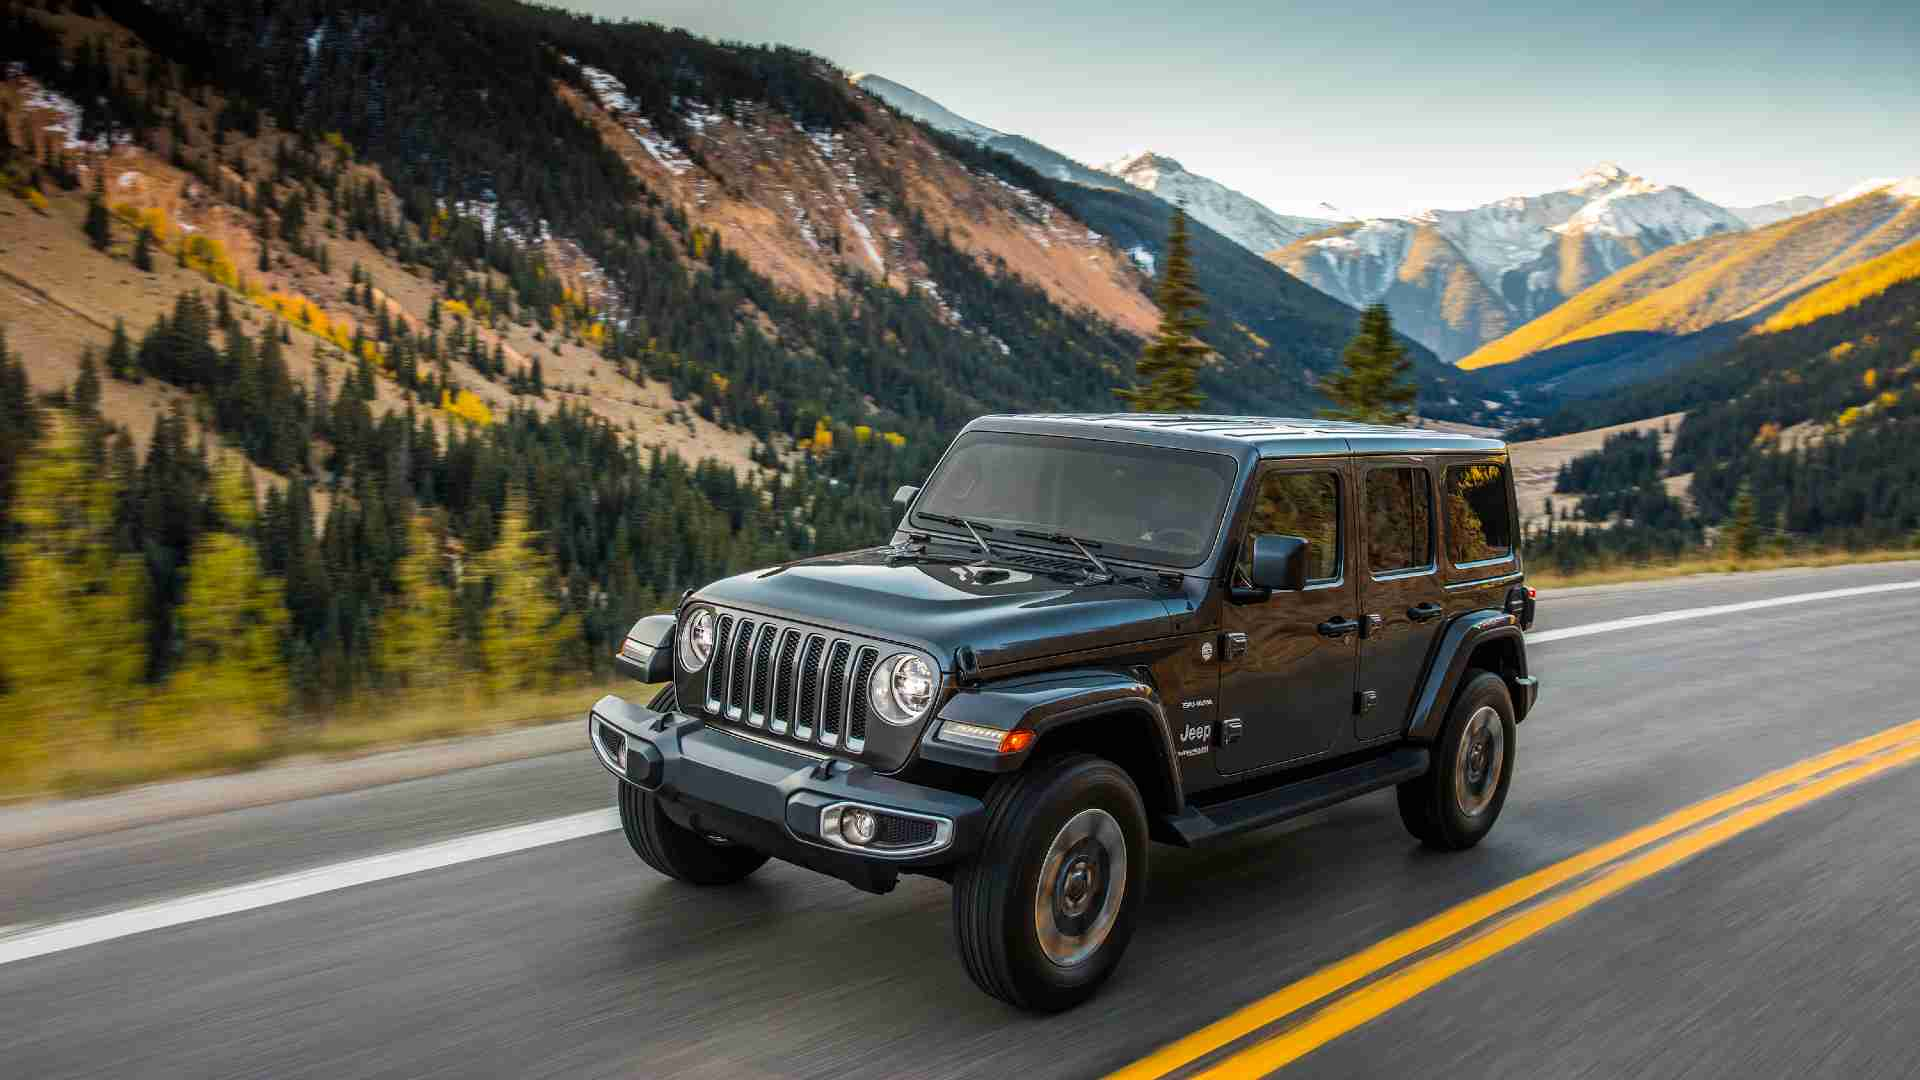 Jeep Wrangler is now assembled in India, CKD version to be launched on 15 March